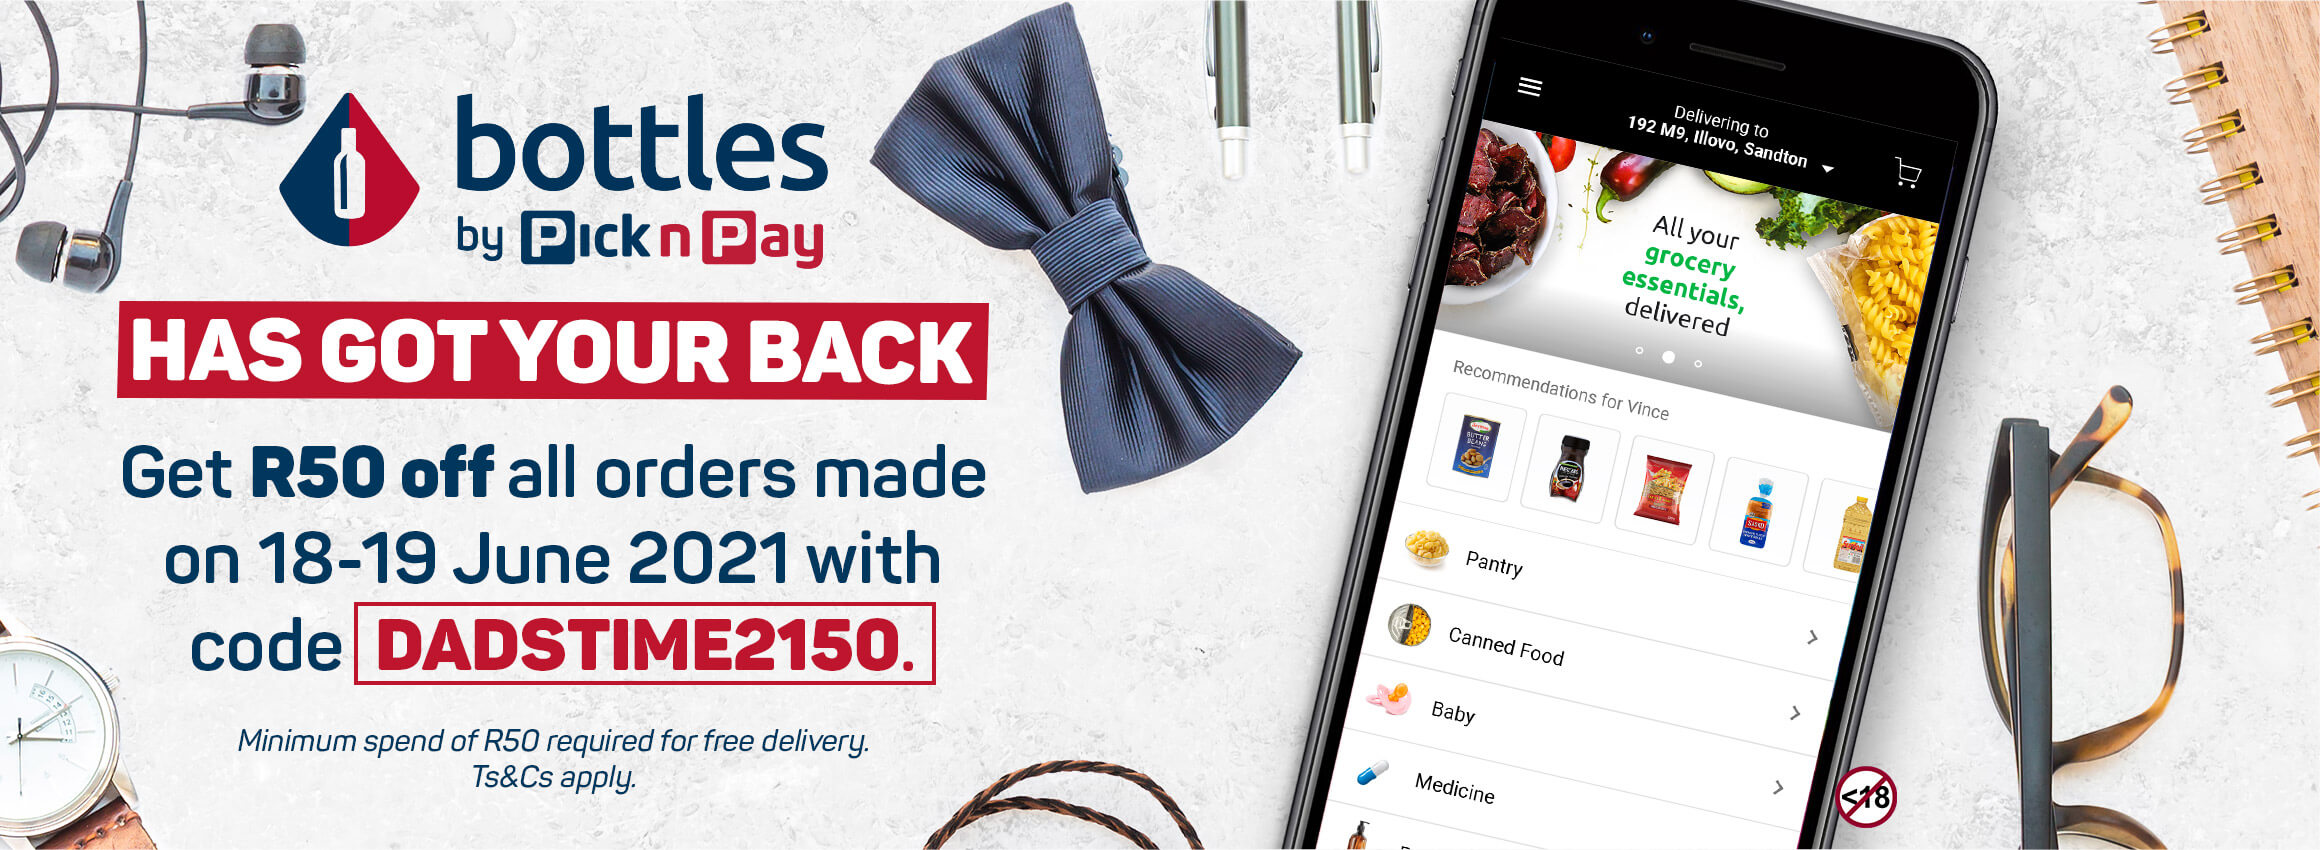 Bottles by Pick n Pay has got your back.